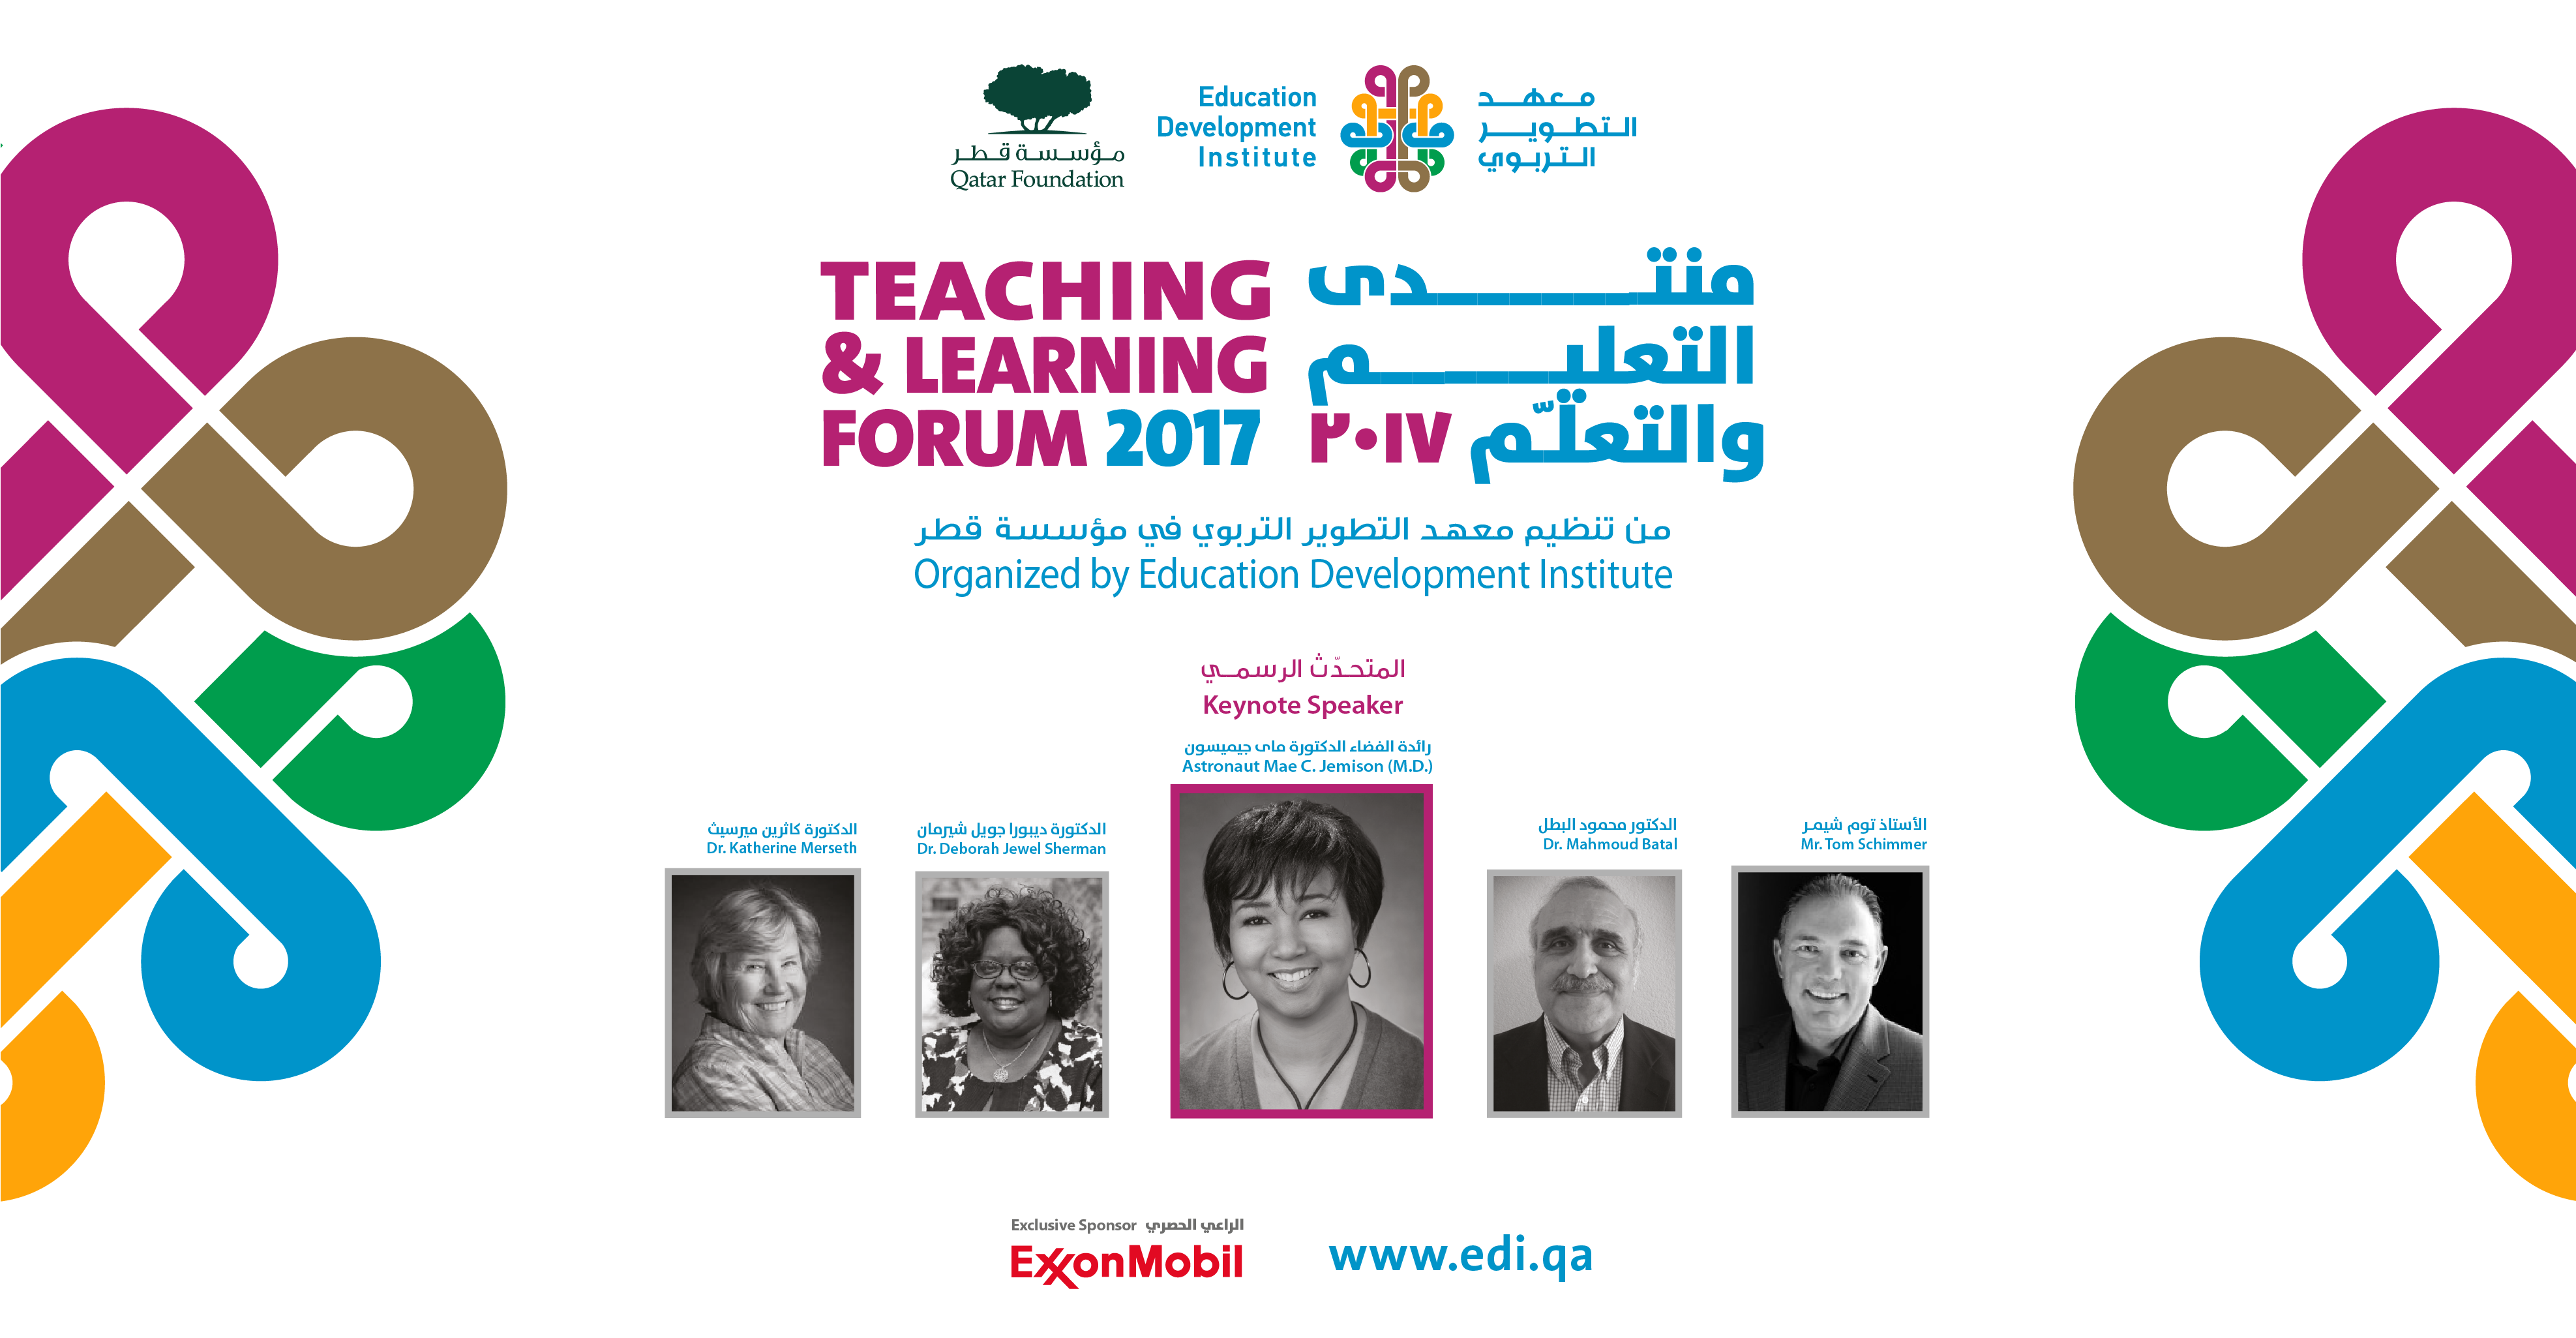 Fourth Annual Teaching & Learning Forum 2017